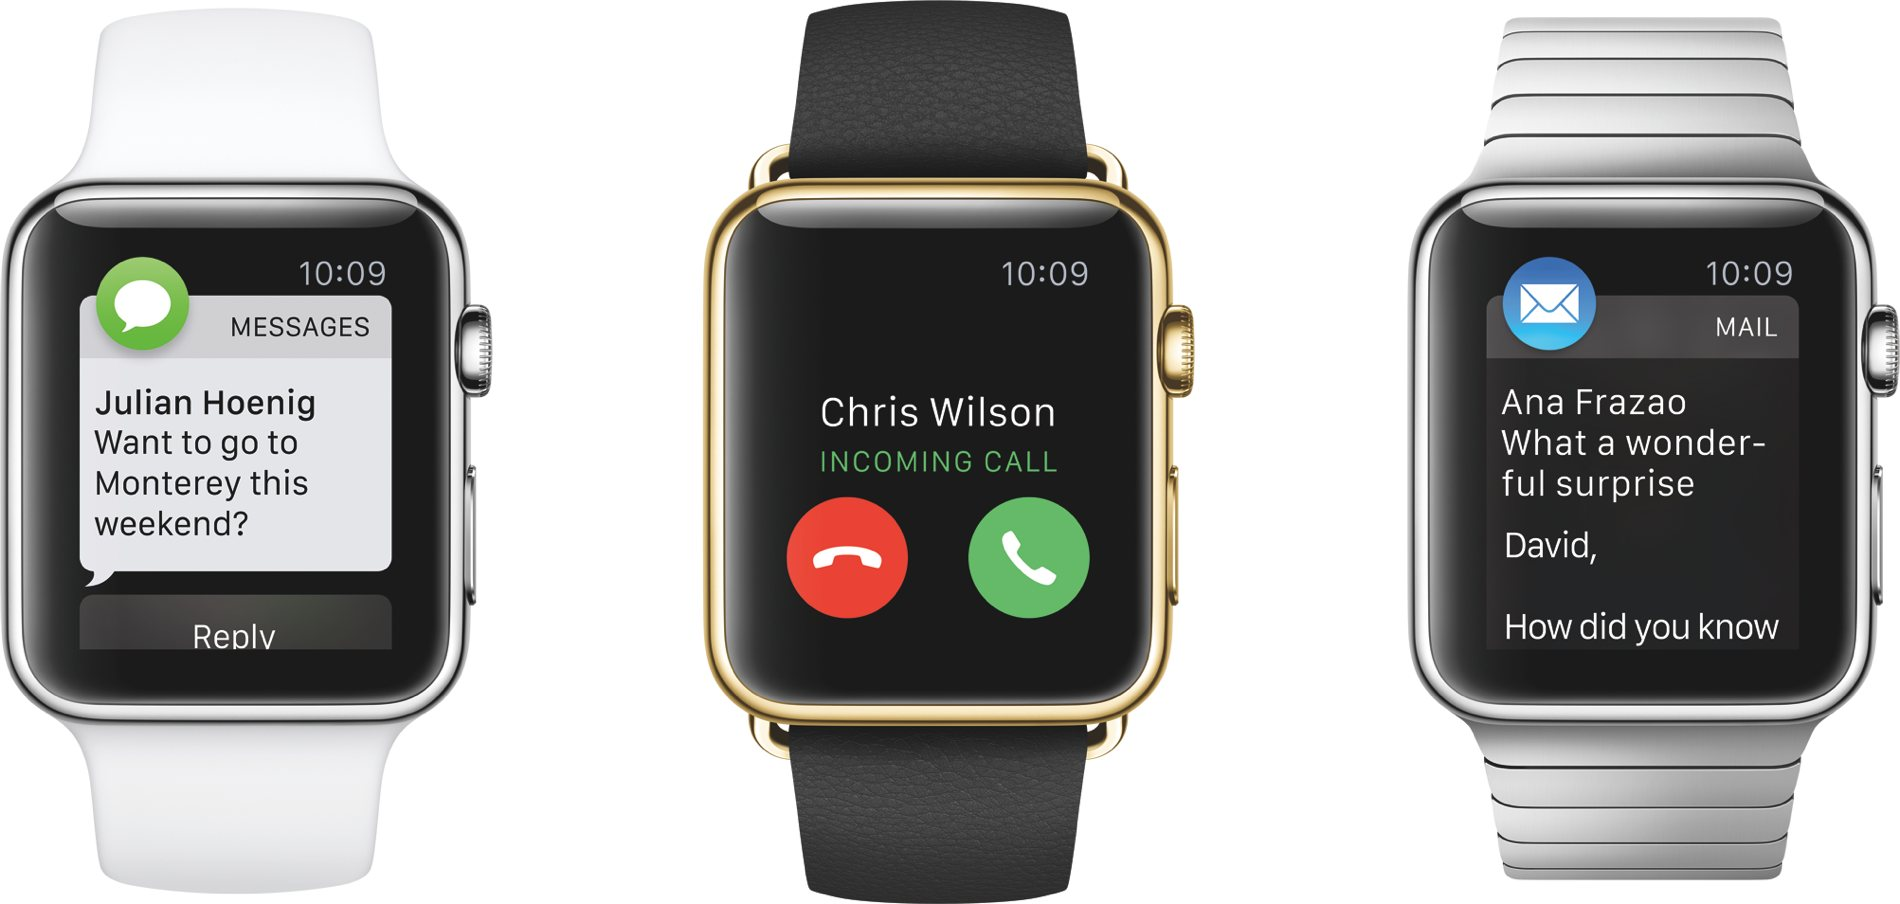 Apple Watch App For Iphone S